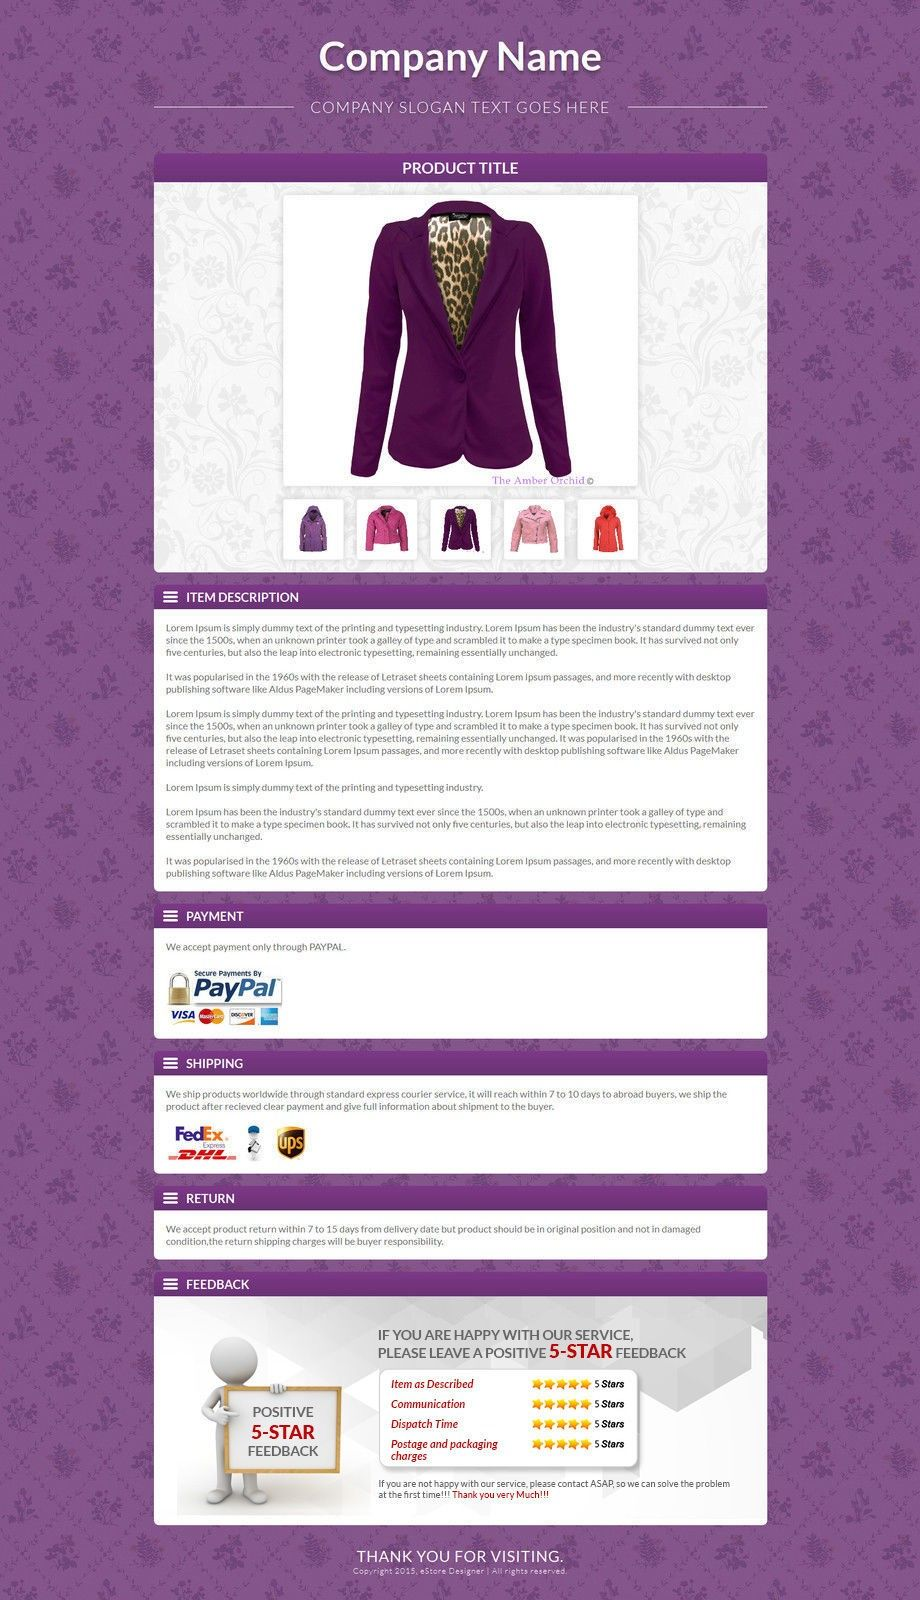 Ebay Description Templates To List Designer Apparel Products For